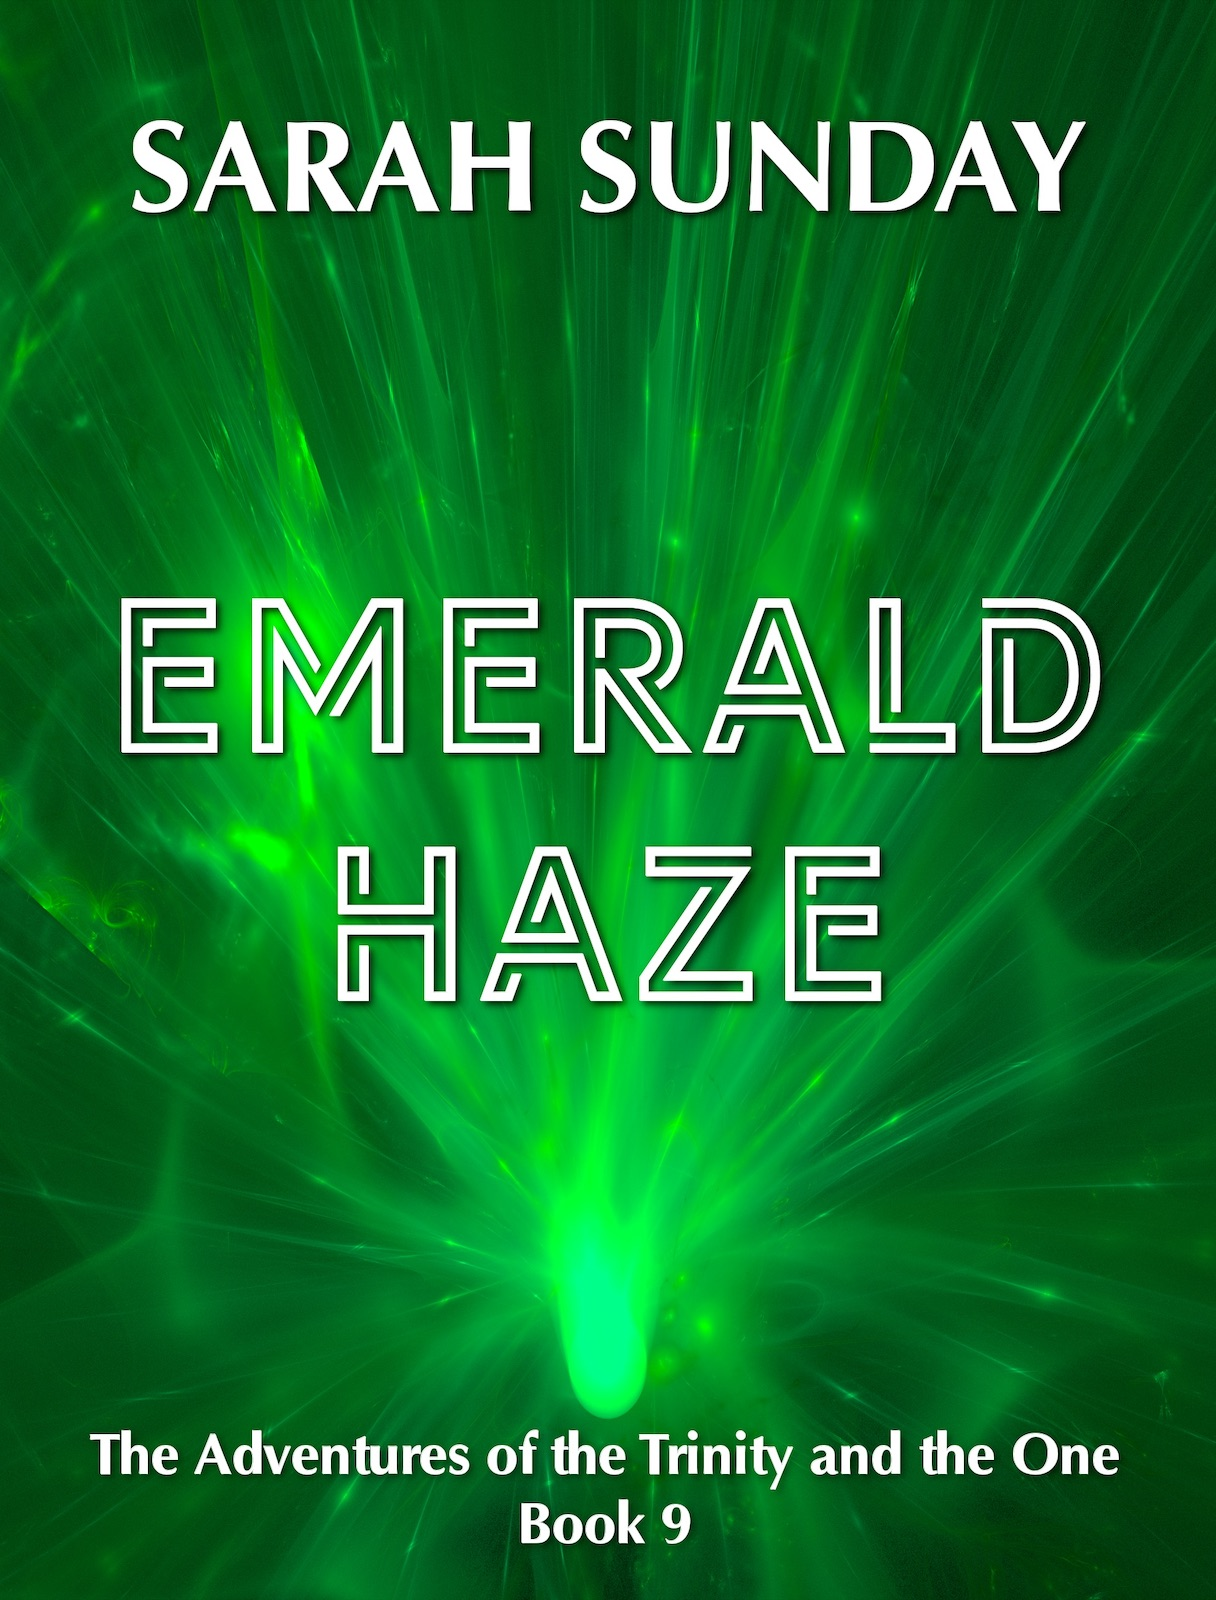 books/Emerald-Haze-Cover.jpg